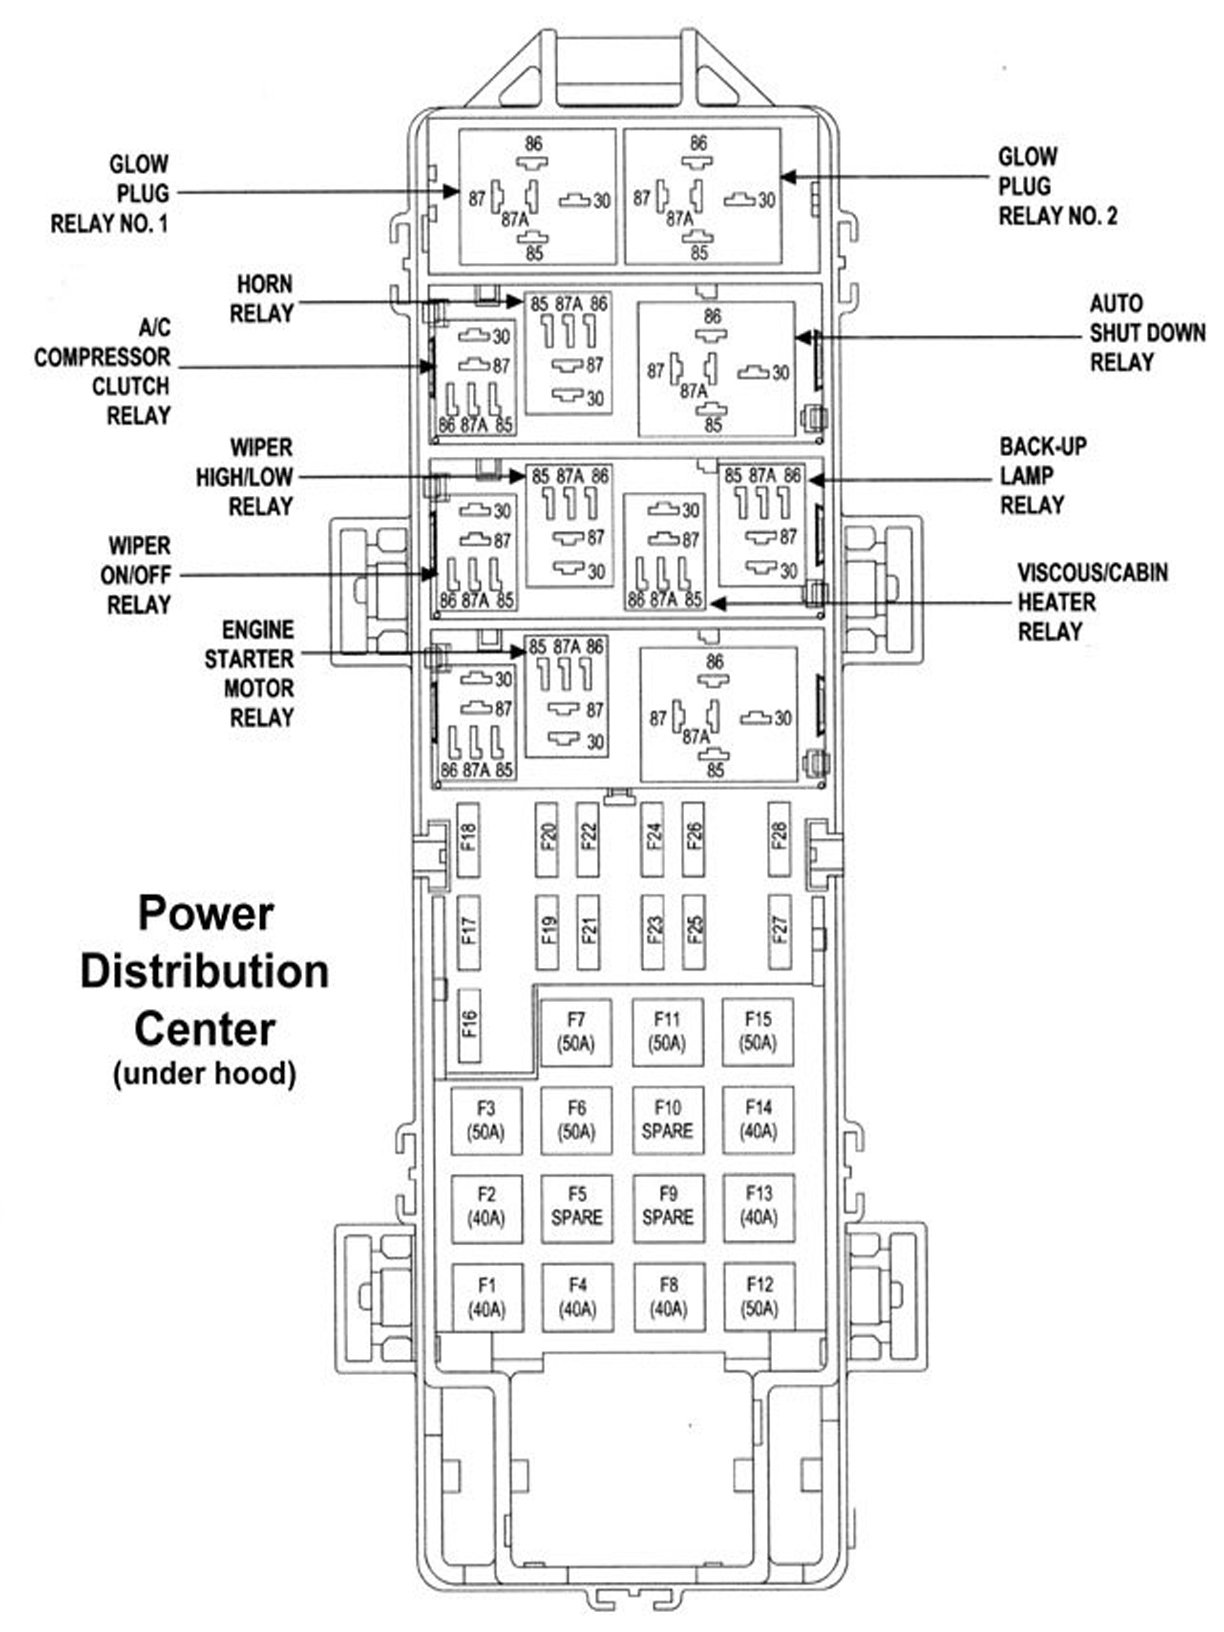 2001 grand cherokee fuse diagram - wiring diagram live-ground -  live-ground.lechicchedimammavale.it  lechicchedimammavale.it